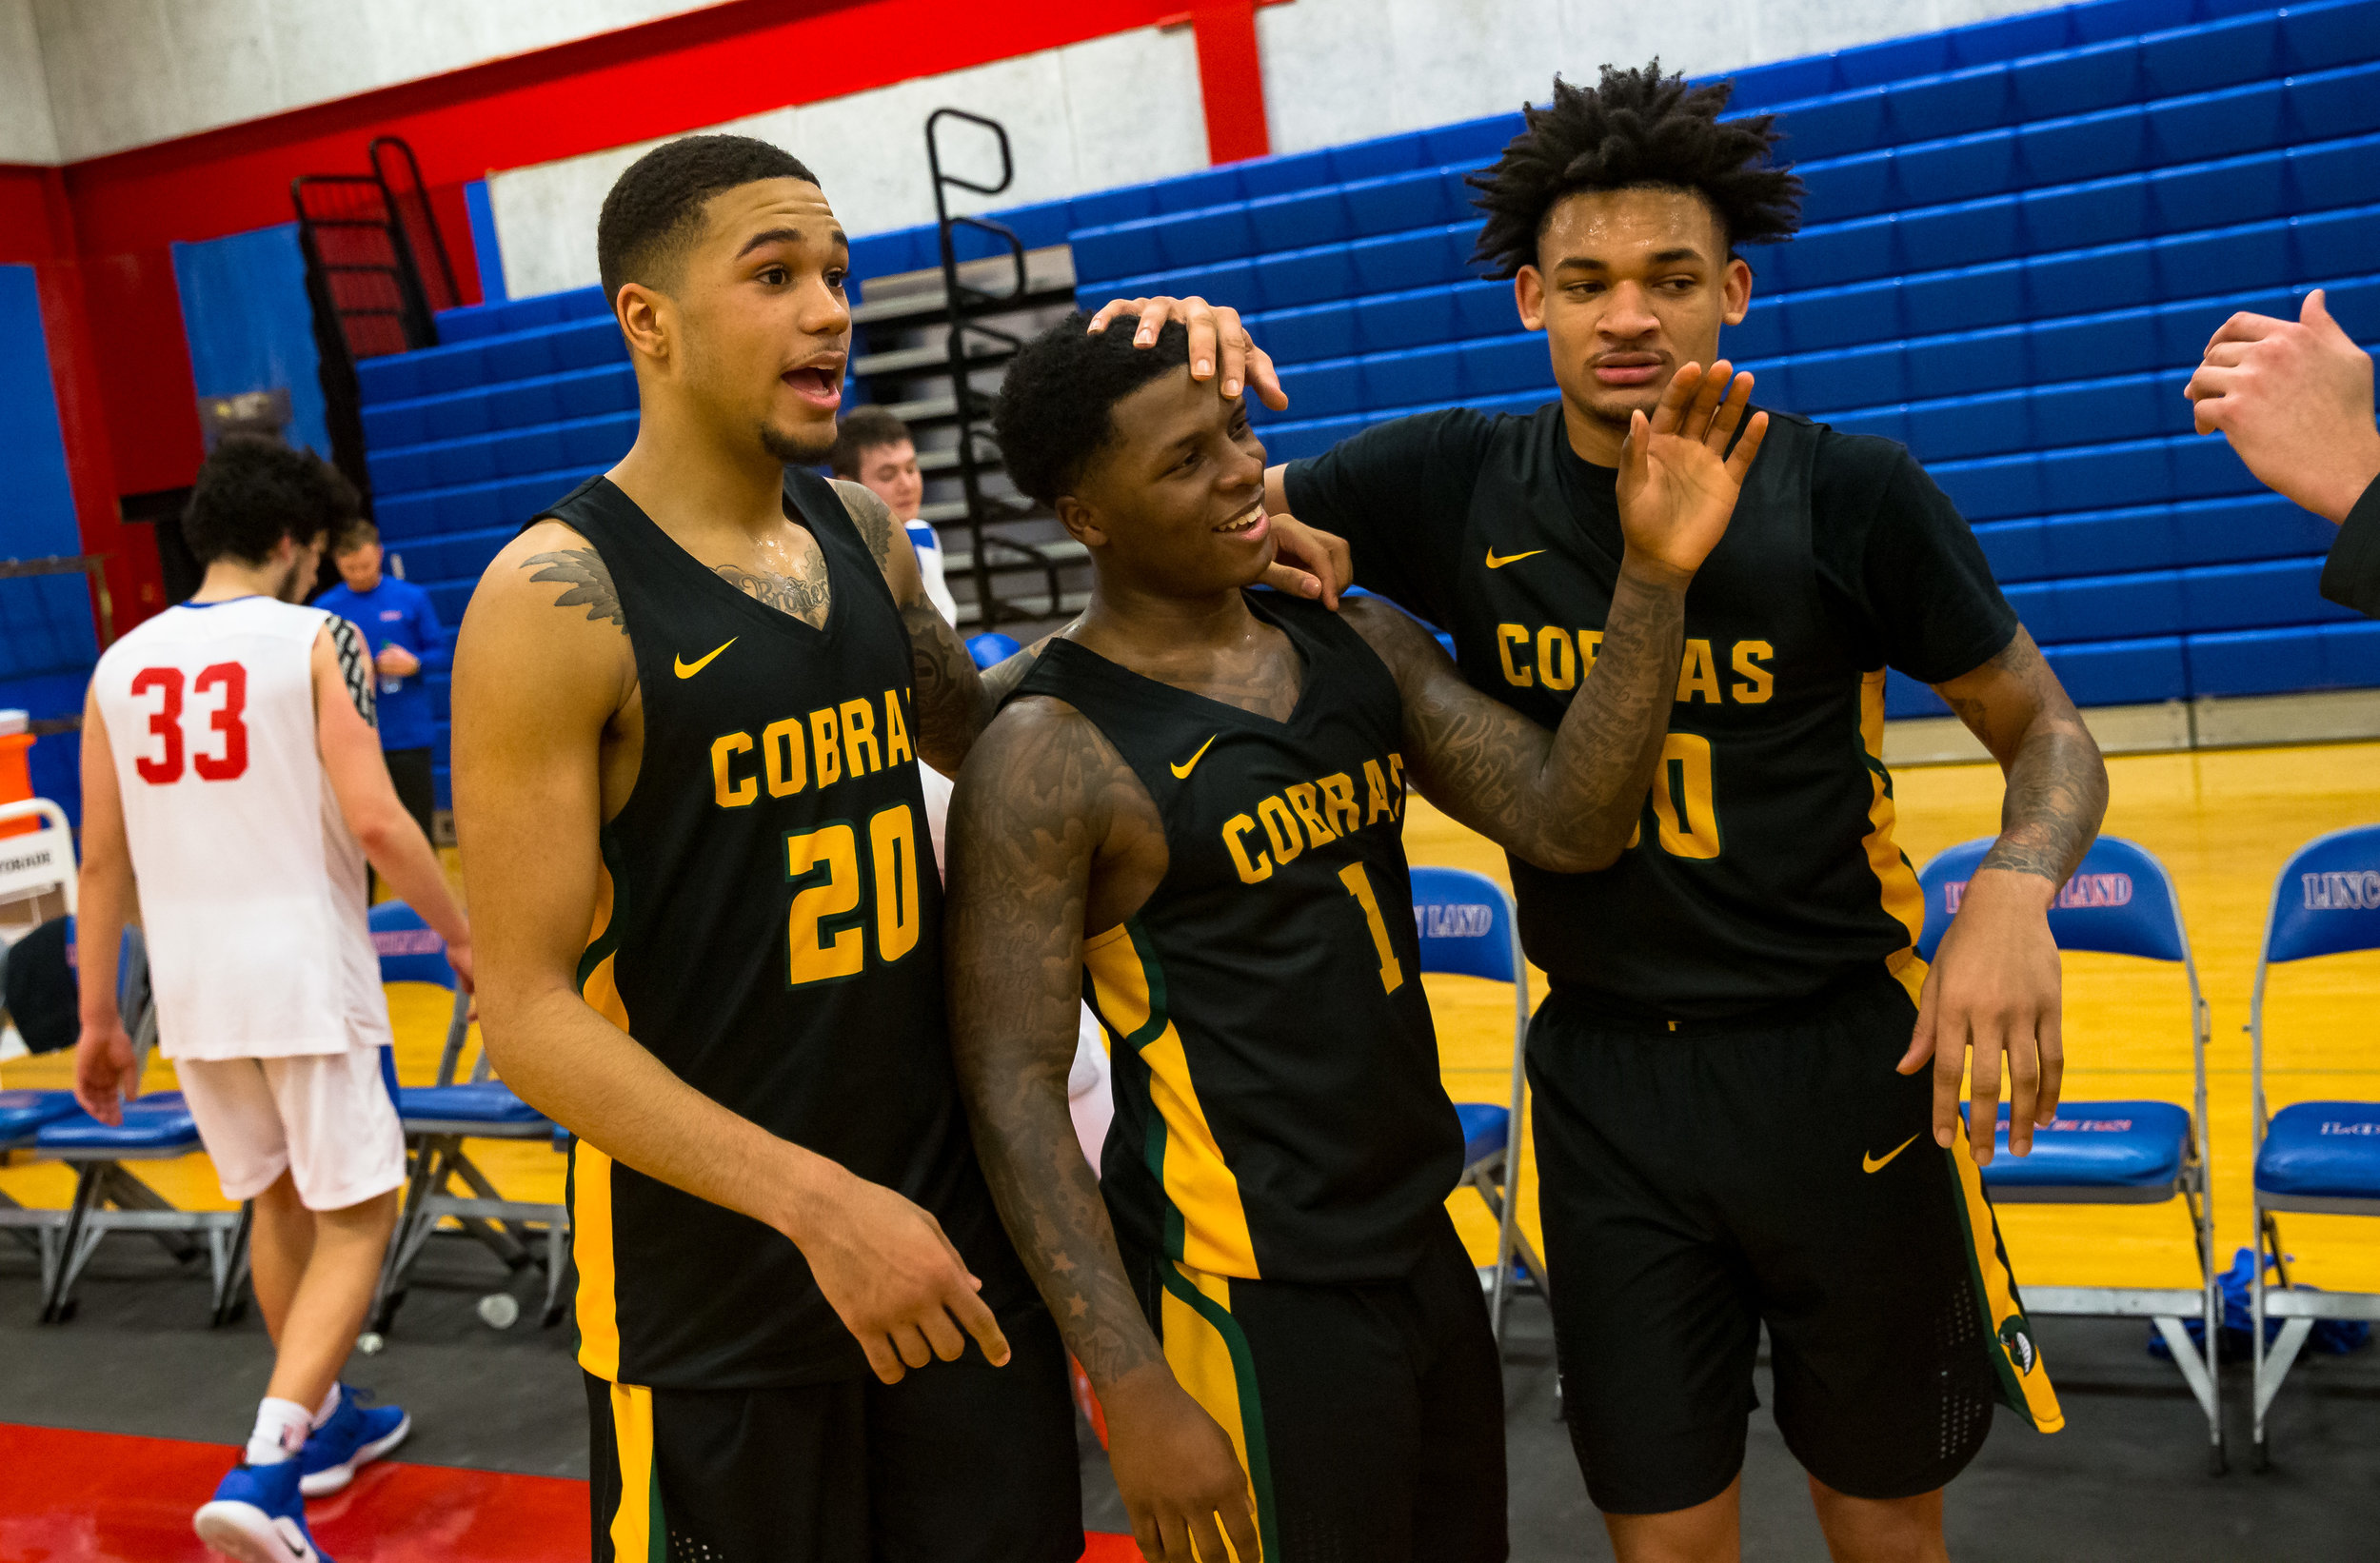 Parkland College's Yaakema Rose Jr. (1) celebrates with his teammates Parkland College's Carter Jeffries (20) and Parkland College's Ty Walter Jr. (30) after the Cobras defeated Lincoln Land Community College 91-59 at Lincoln Land Community College's Cass Gymnasium, Wednesday, Feb. 20, 2019, in Springfield, Ill. [Justin L. Fowler/The State Journal-Register]